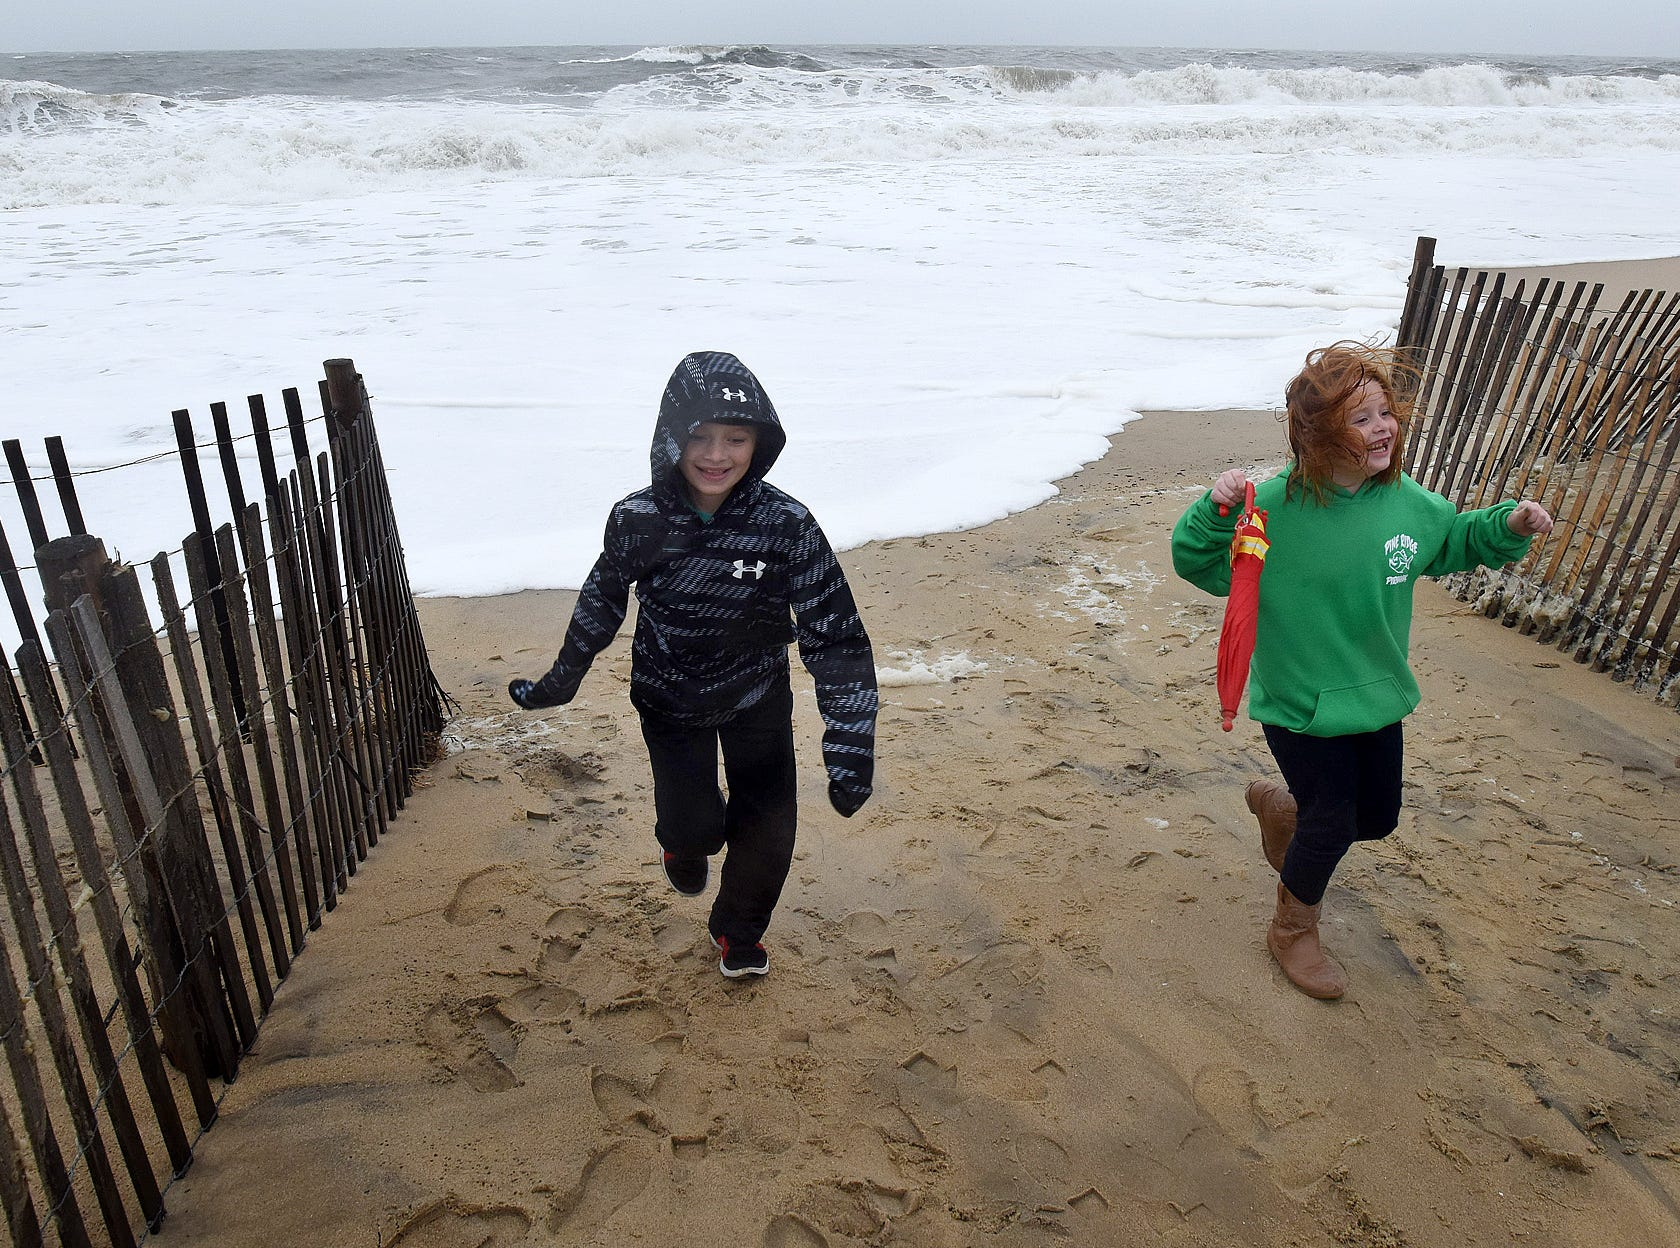 Chase and Aubrey Chmielewski from Towson, MD. run from the ocean as Rehoboth Beach's Annual Sea Witch Festival is underway despite a Nor'easter passing over the beach area. The ocean is coming up to the Dune Line as sea foam spray's the beach as high winds have blown sand on the boardwalk. There was a Kids Bike Parade on the boardwalk Friday afternoon along with a Kids Train Ride in Grove Park.  Special to the News Journal / CHUCK SNYDER